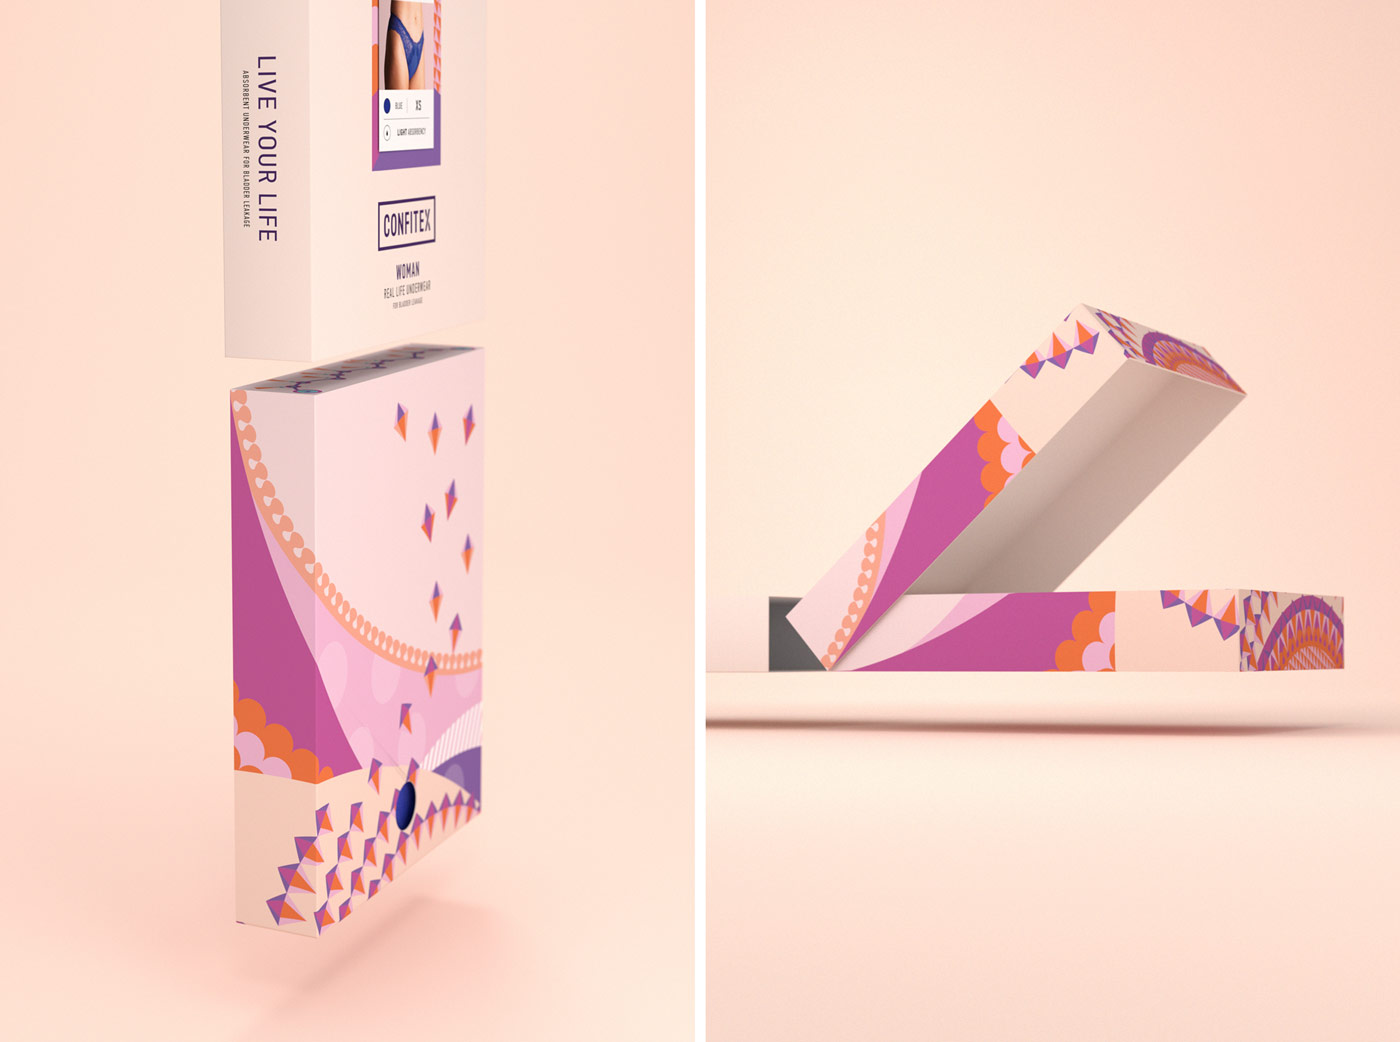 CON Packaging FMCG 2